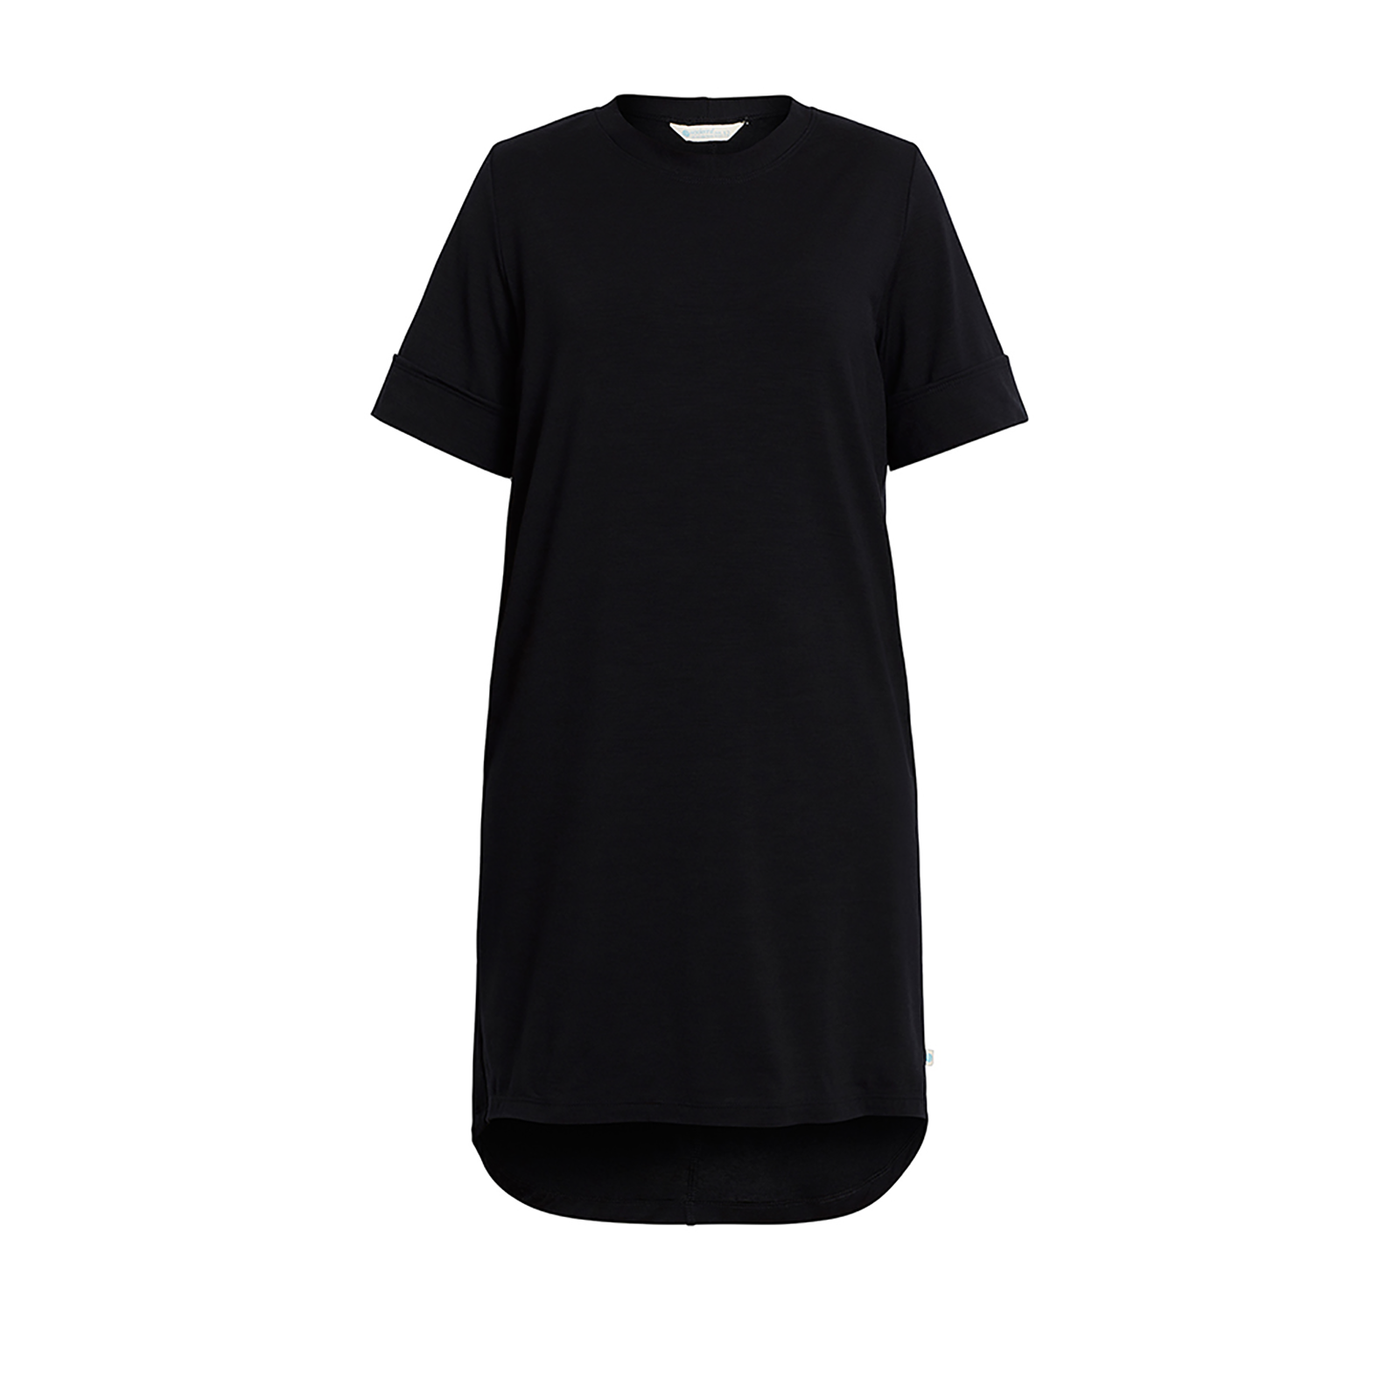 Womens Merino Wool T.Shirt Dress. Australian Made, Ethical Clothing Australia accredited